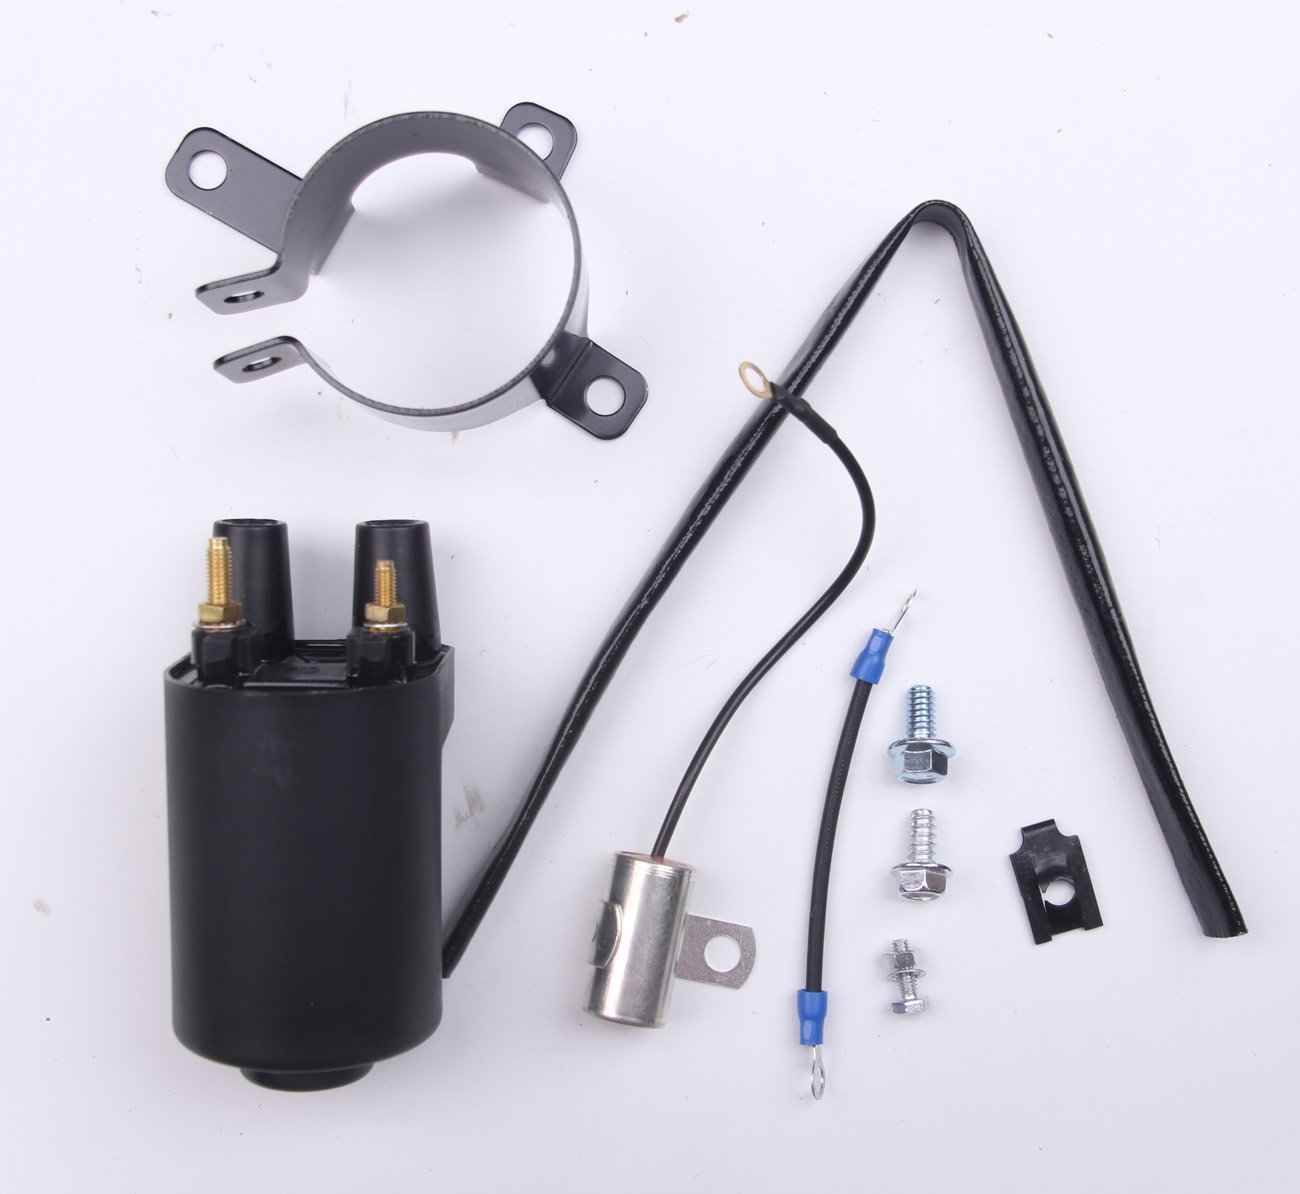 New Ignition Coil Kit For Onan 541-0522 P Series, BGD, BGE, BGM, NHD, NHE & NHM,Replace #166-0761,166-0820